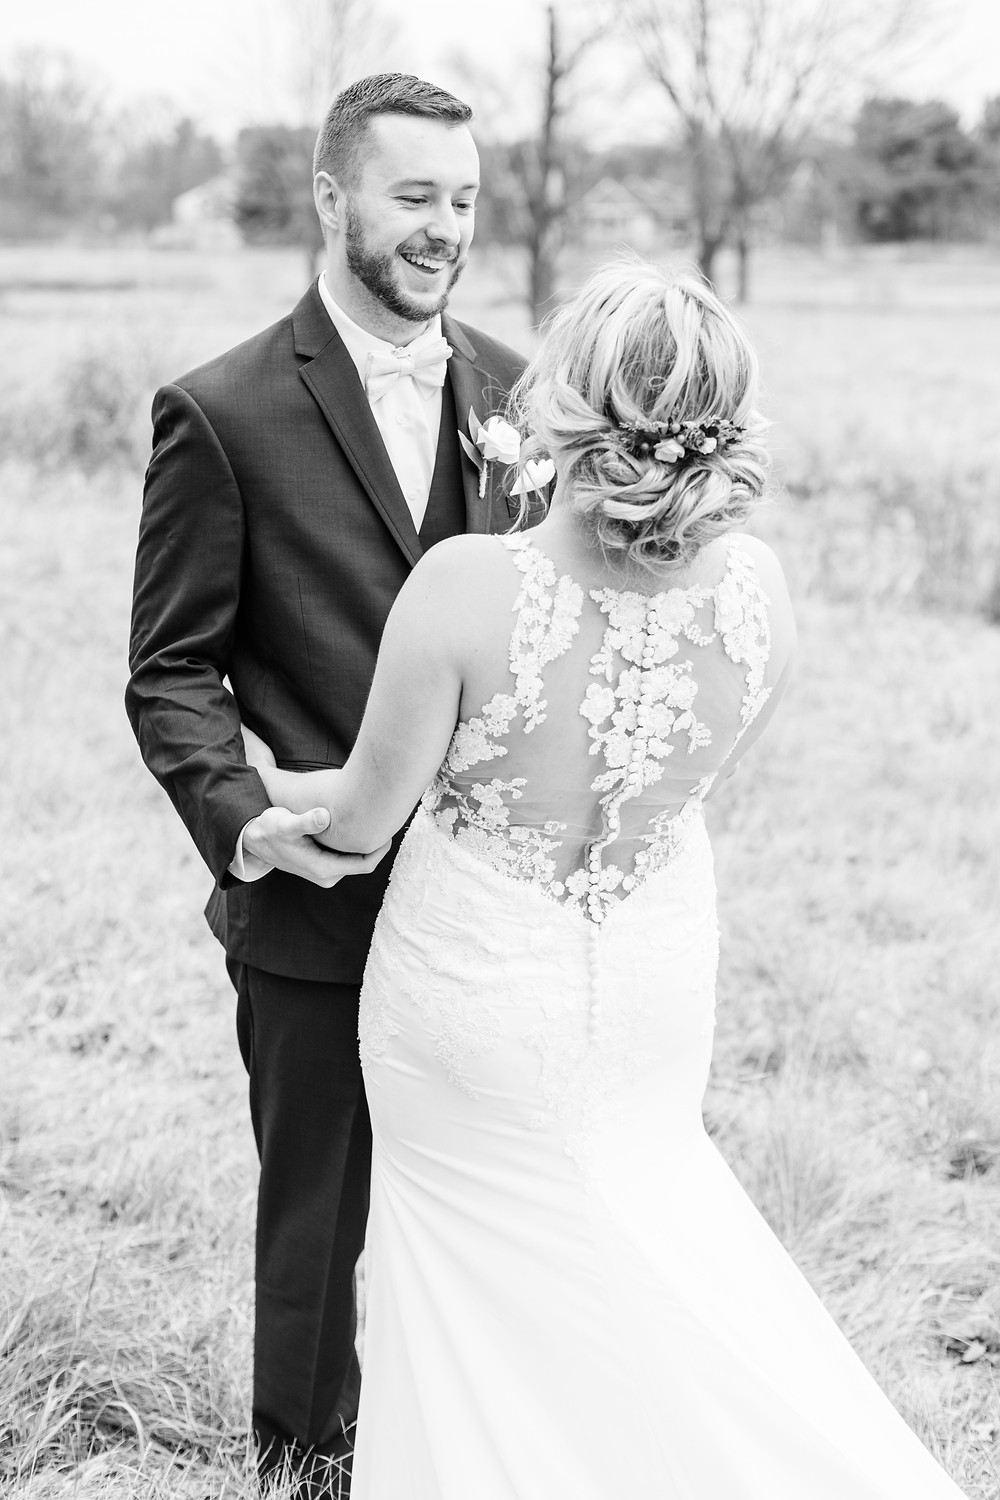 josh and Andrea photography husband and wife team michigan winter wedding bride and groom first look